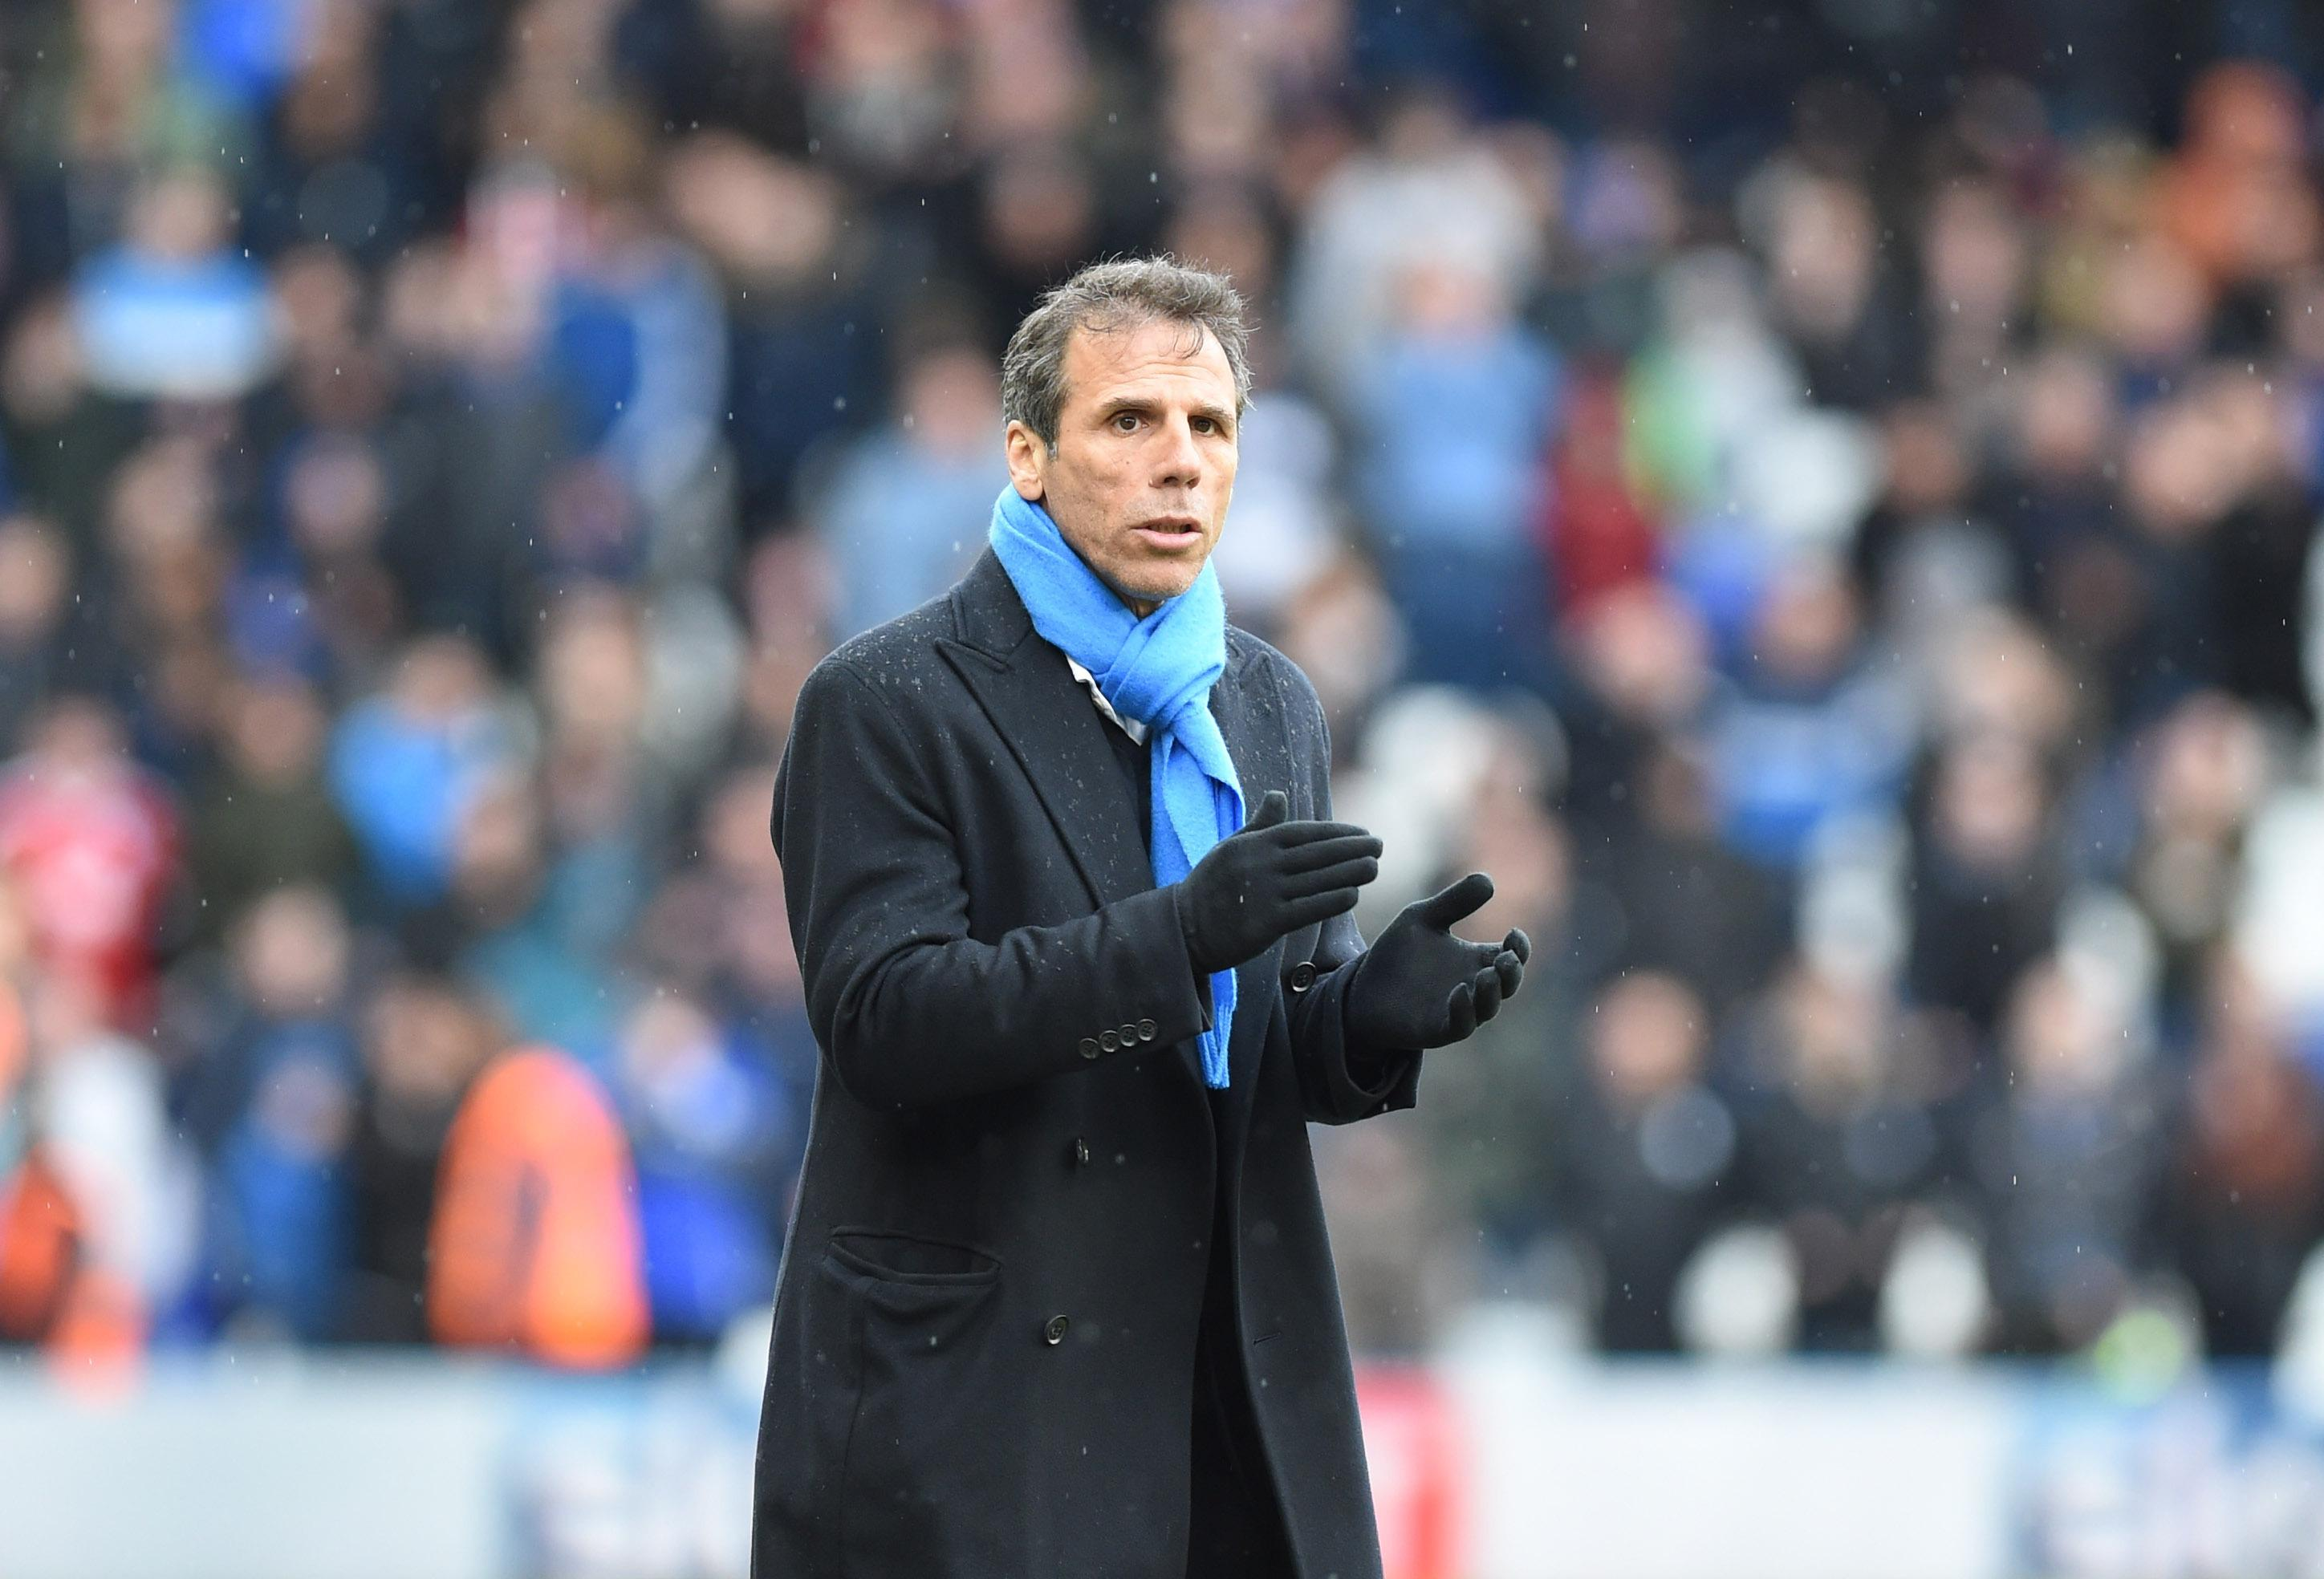 Chelsea legend Gianfranco Zola is also set for a return to Stamford Bridge